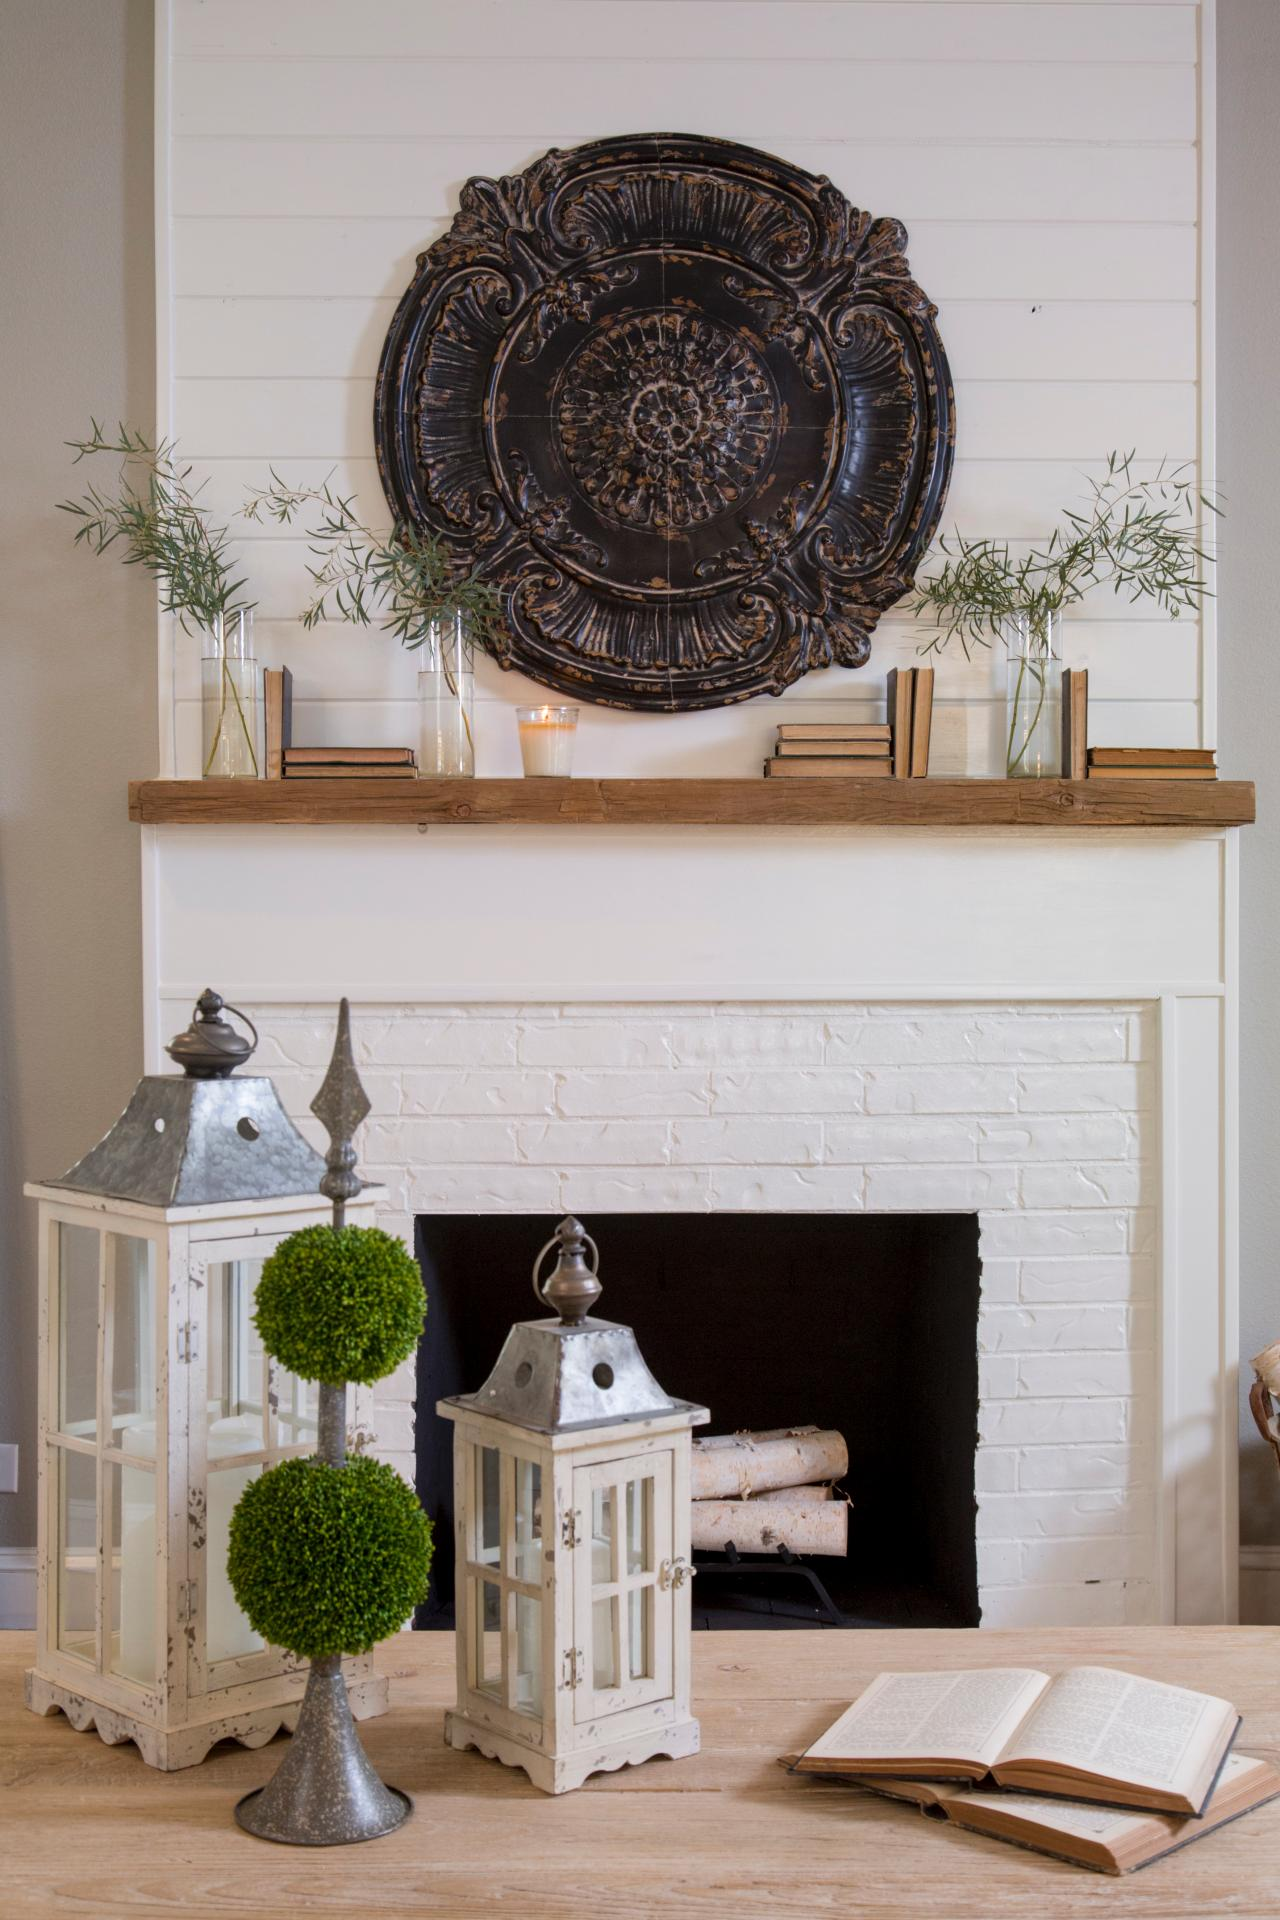 How to get the vintage farmhouse look think fixer upper for Decor over fireplace